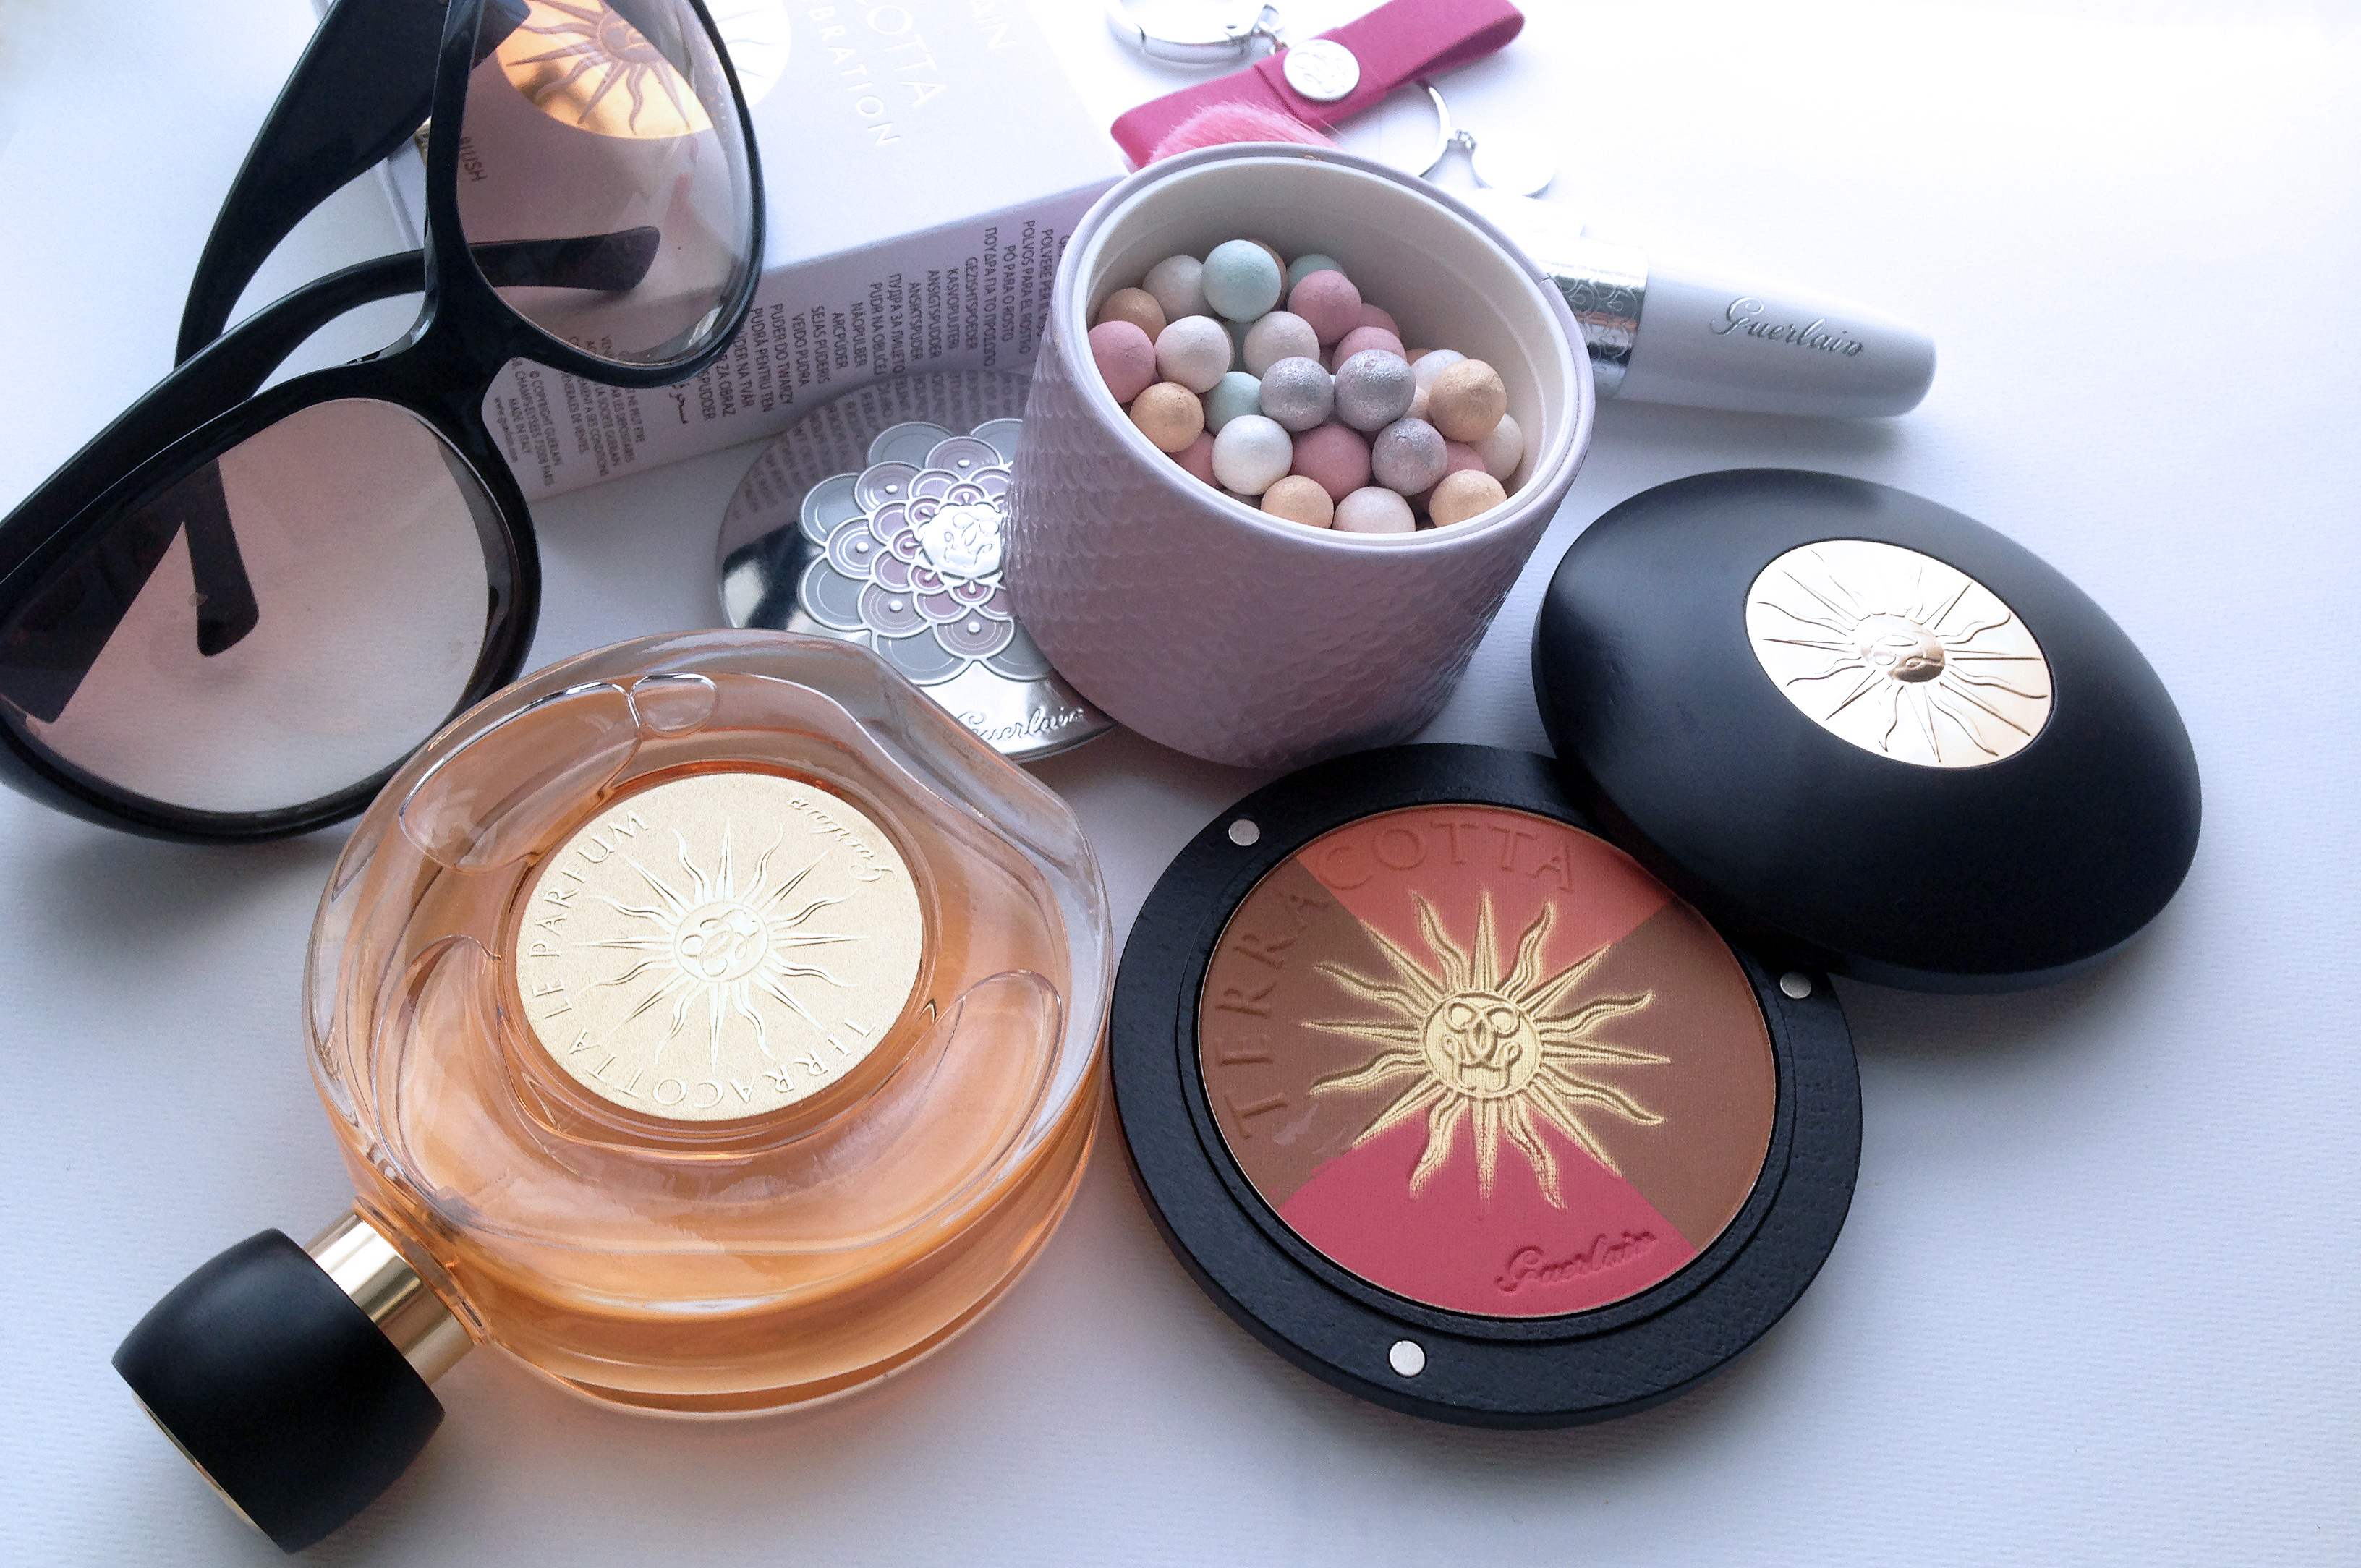 Guerlain Summer 2014 Terracotta Sun Celebration Powder, Le ...